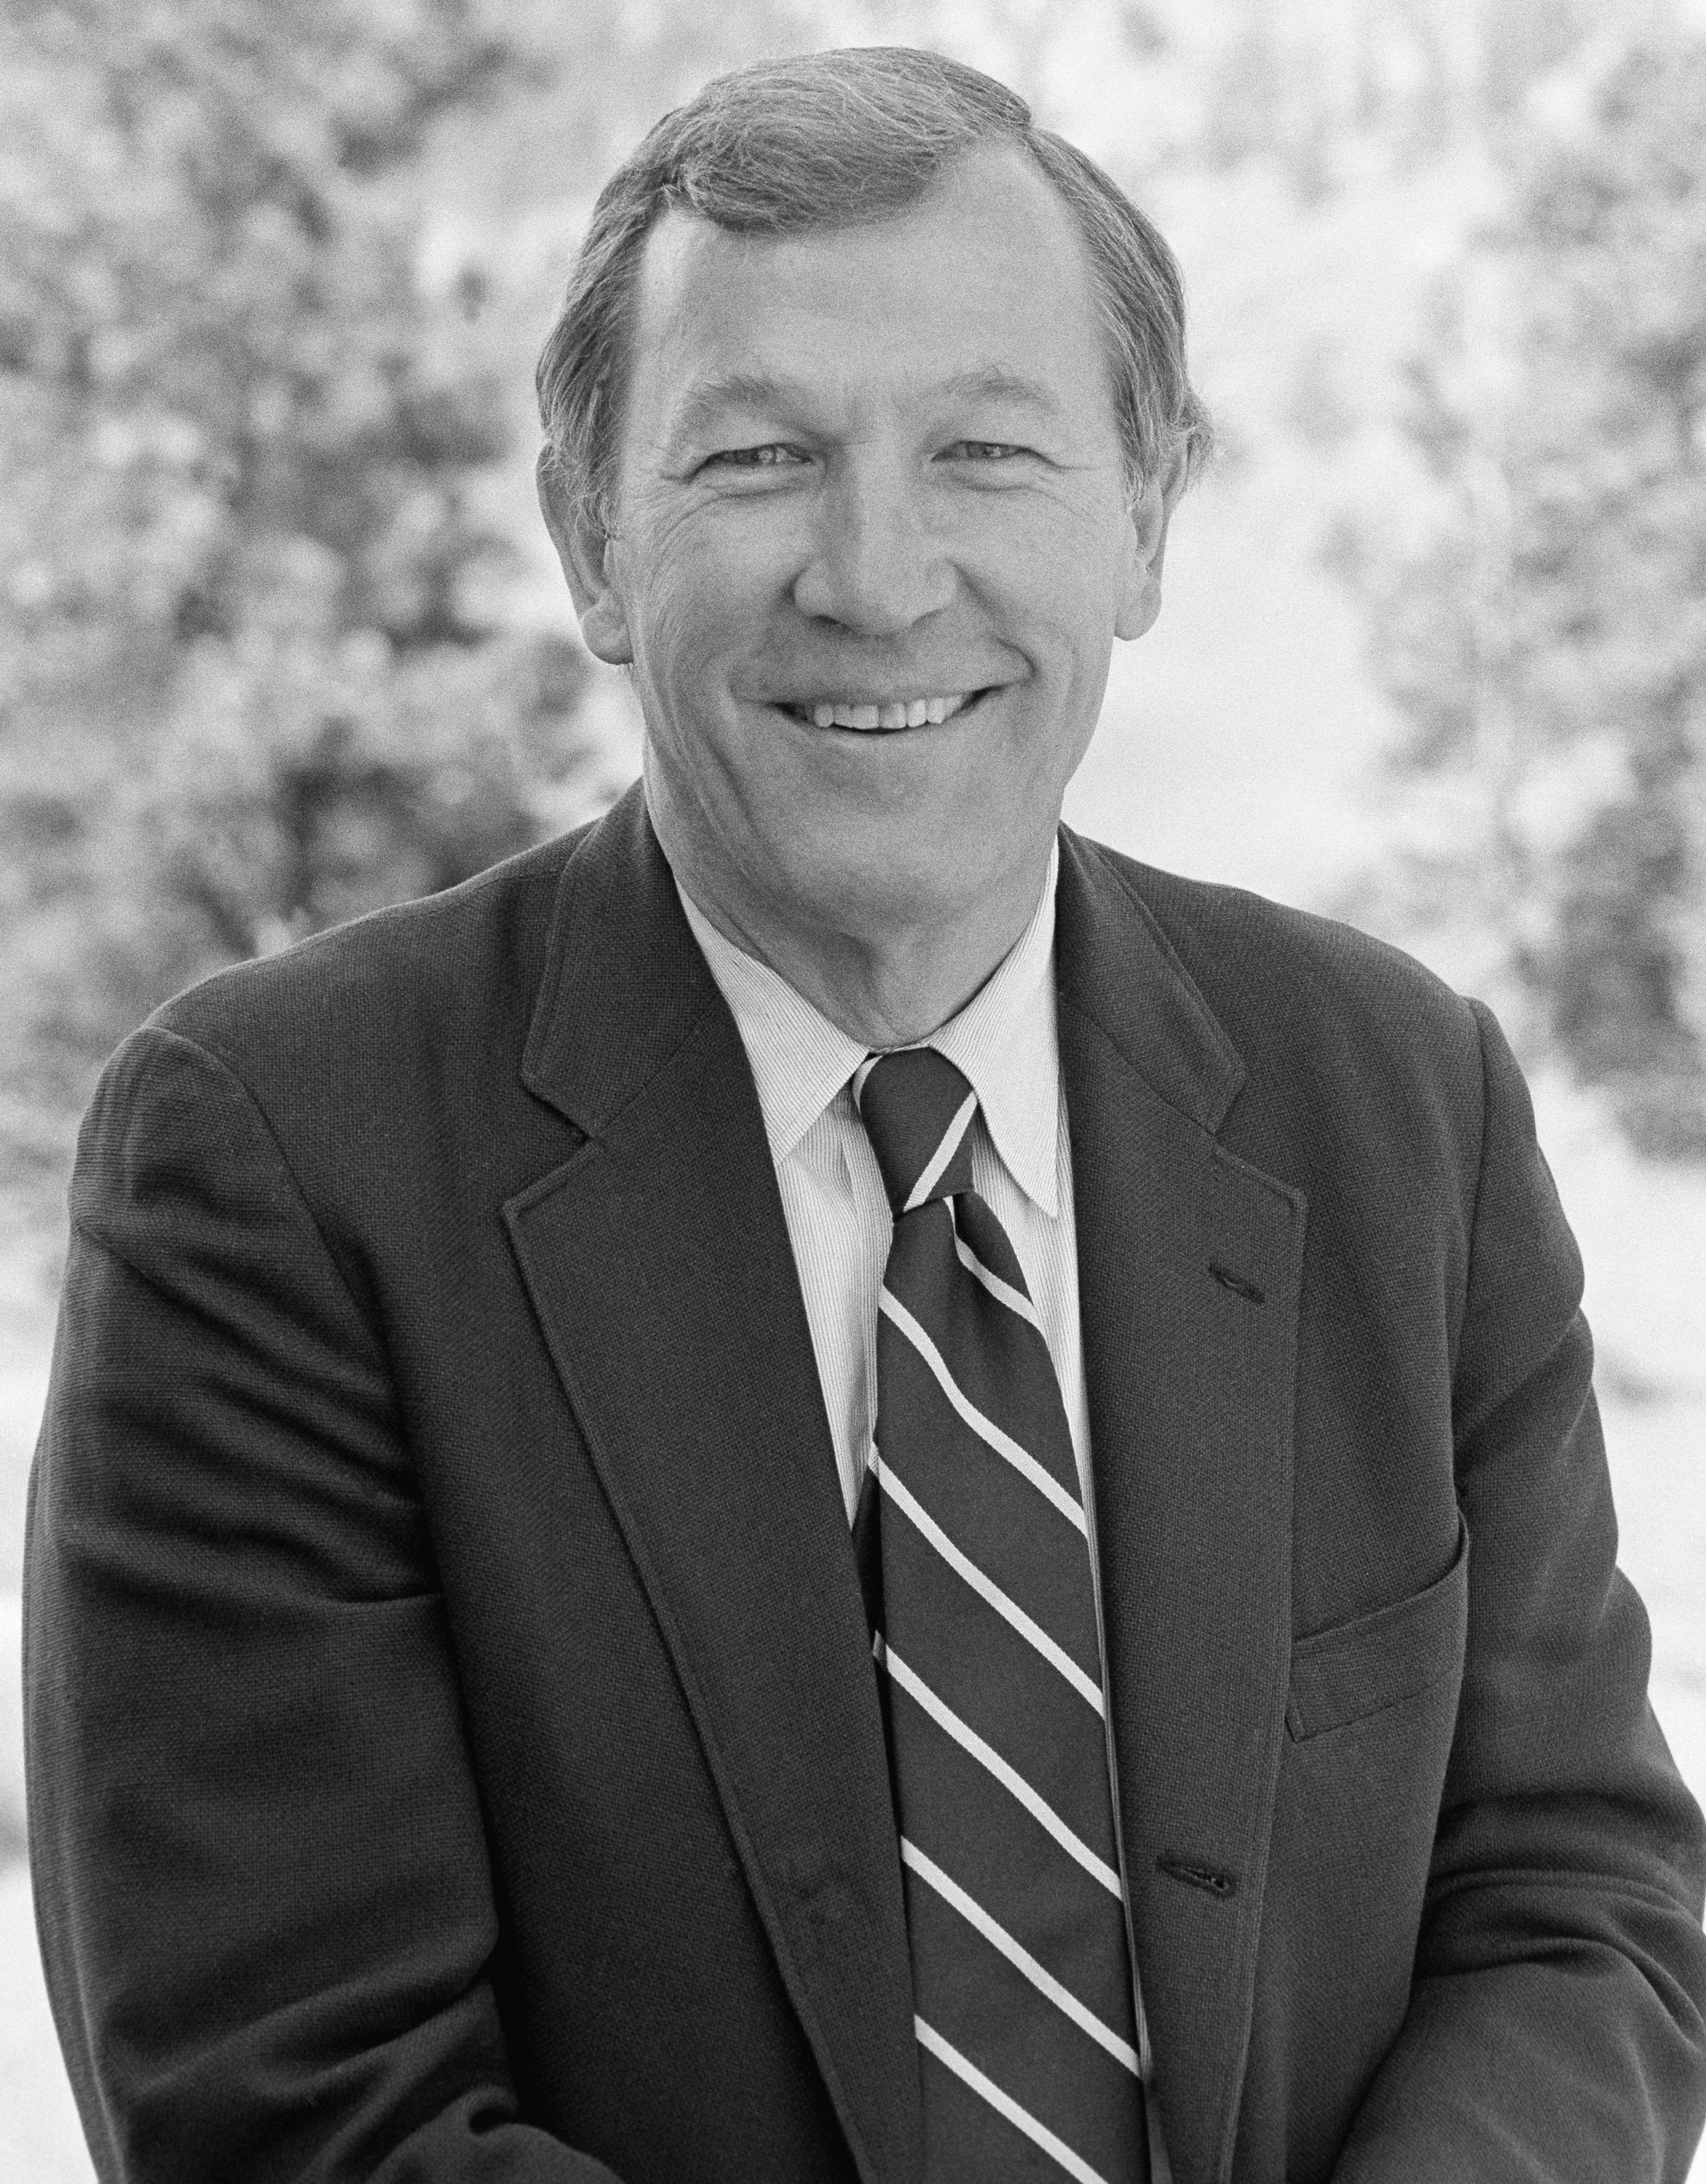 Roger Mudd smiling in a 1986 picture | Photo: NBC NewsWire/NBCU Photo Bank/NBCUniversal/Getty Images